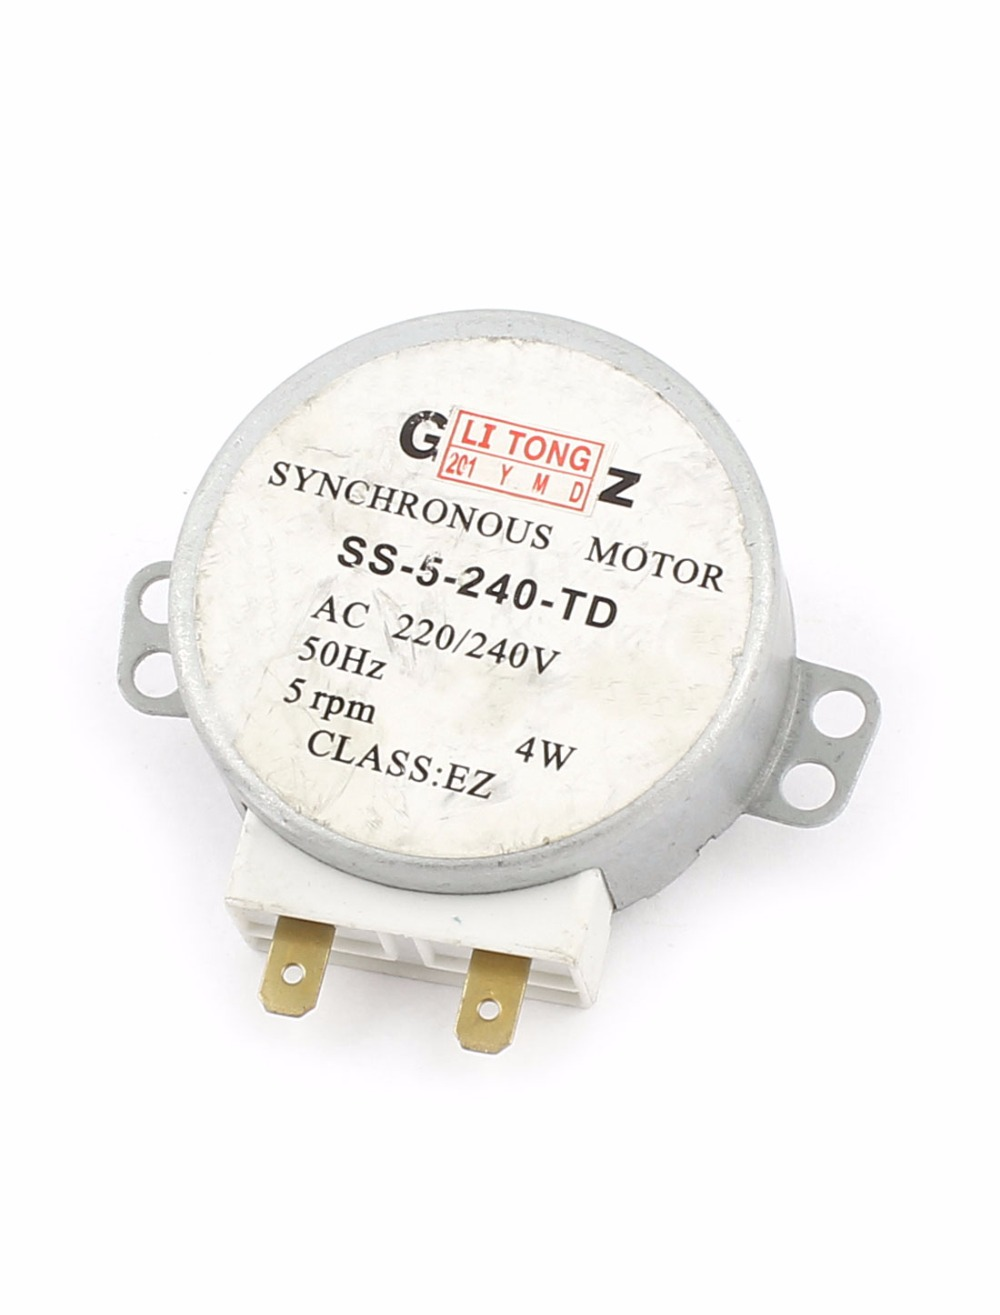 UXCELL Hot Sale 1Pcs AC 220/240V Microwave Oven Turntable Synchronous Motor 4W 5RPM lowell настенные часы lowell 14949r коллекция настенные часы